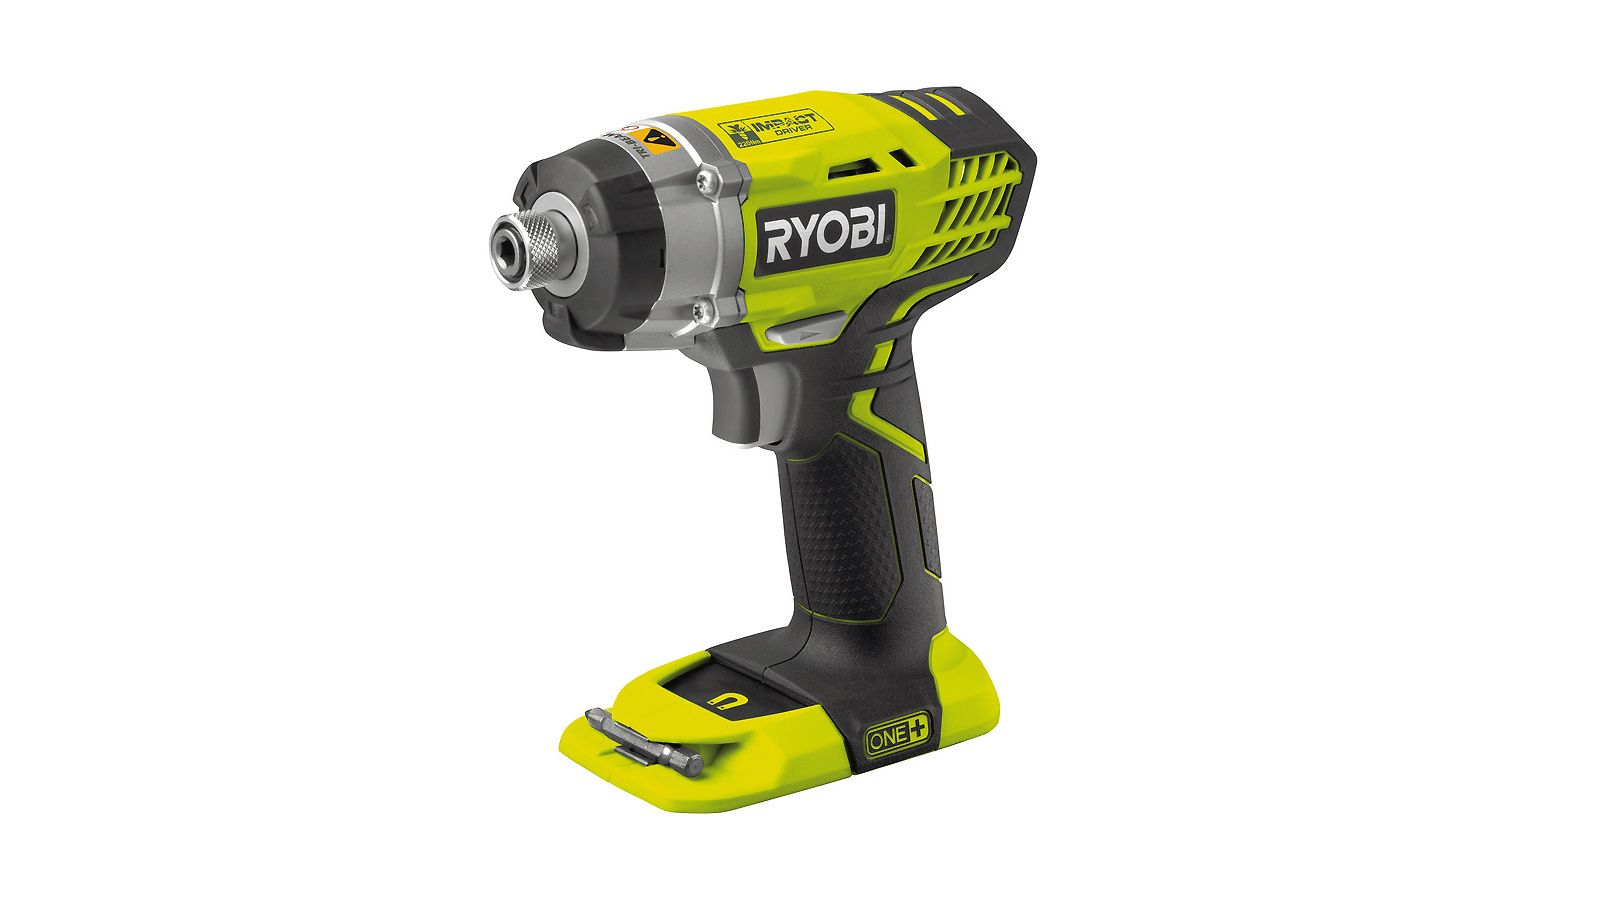 Best Cordless Drill 2020 Diy Drills To Make Holes In Wood Metal And Plastic Wire Free Impact Driver Driver Tool Drill Driver